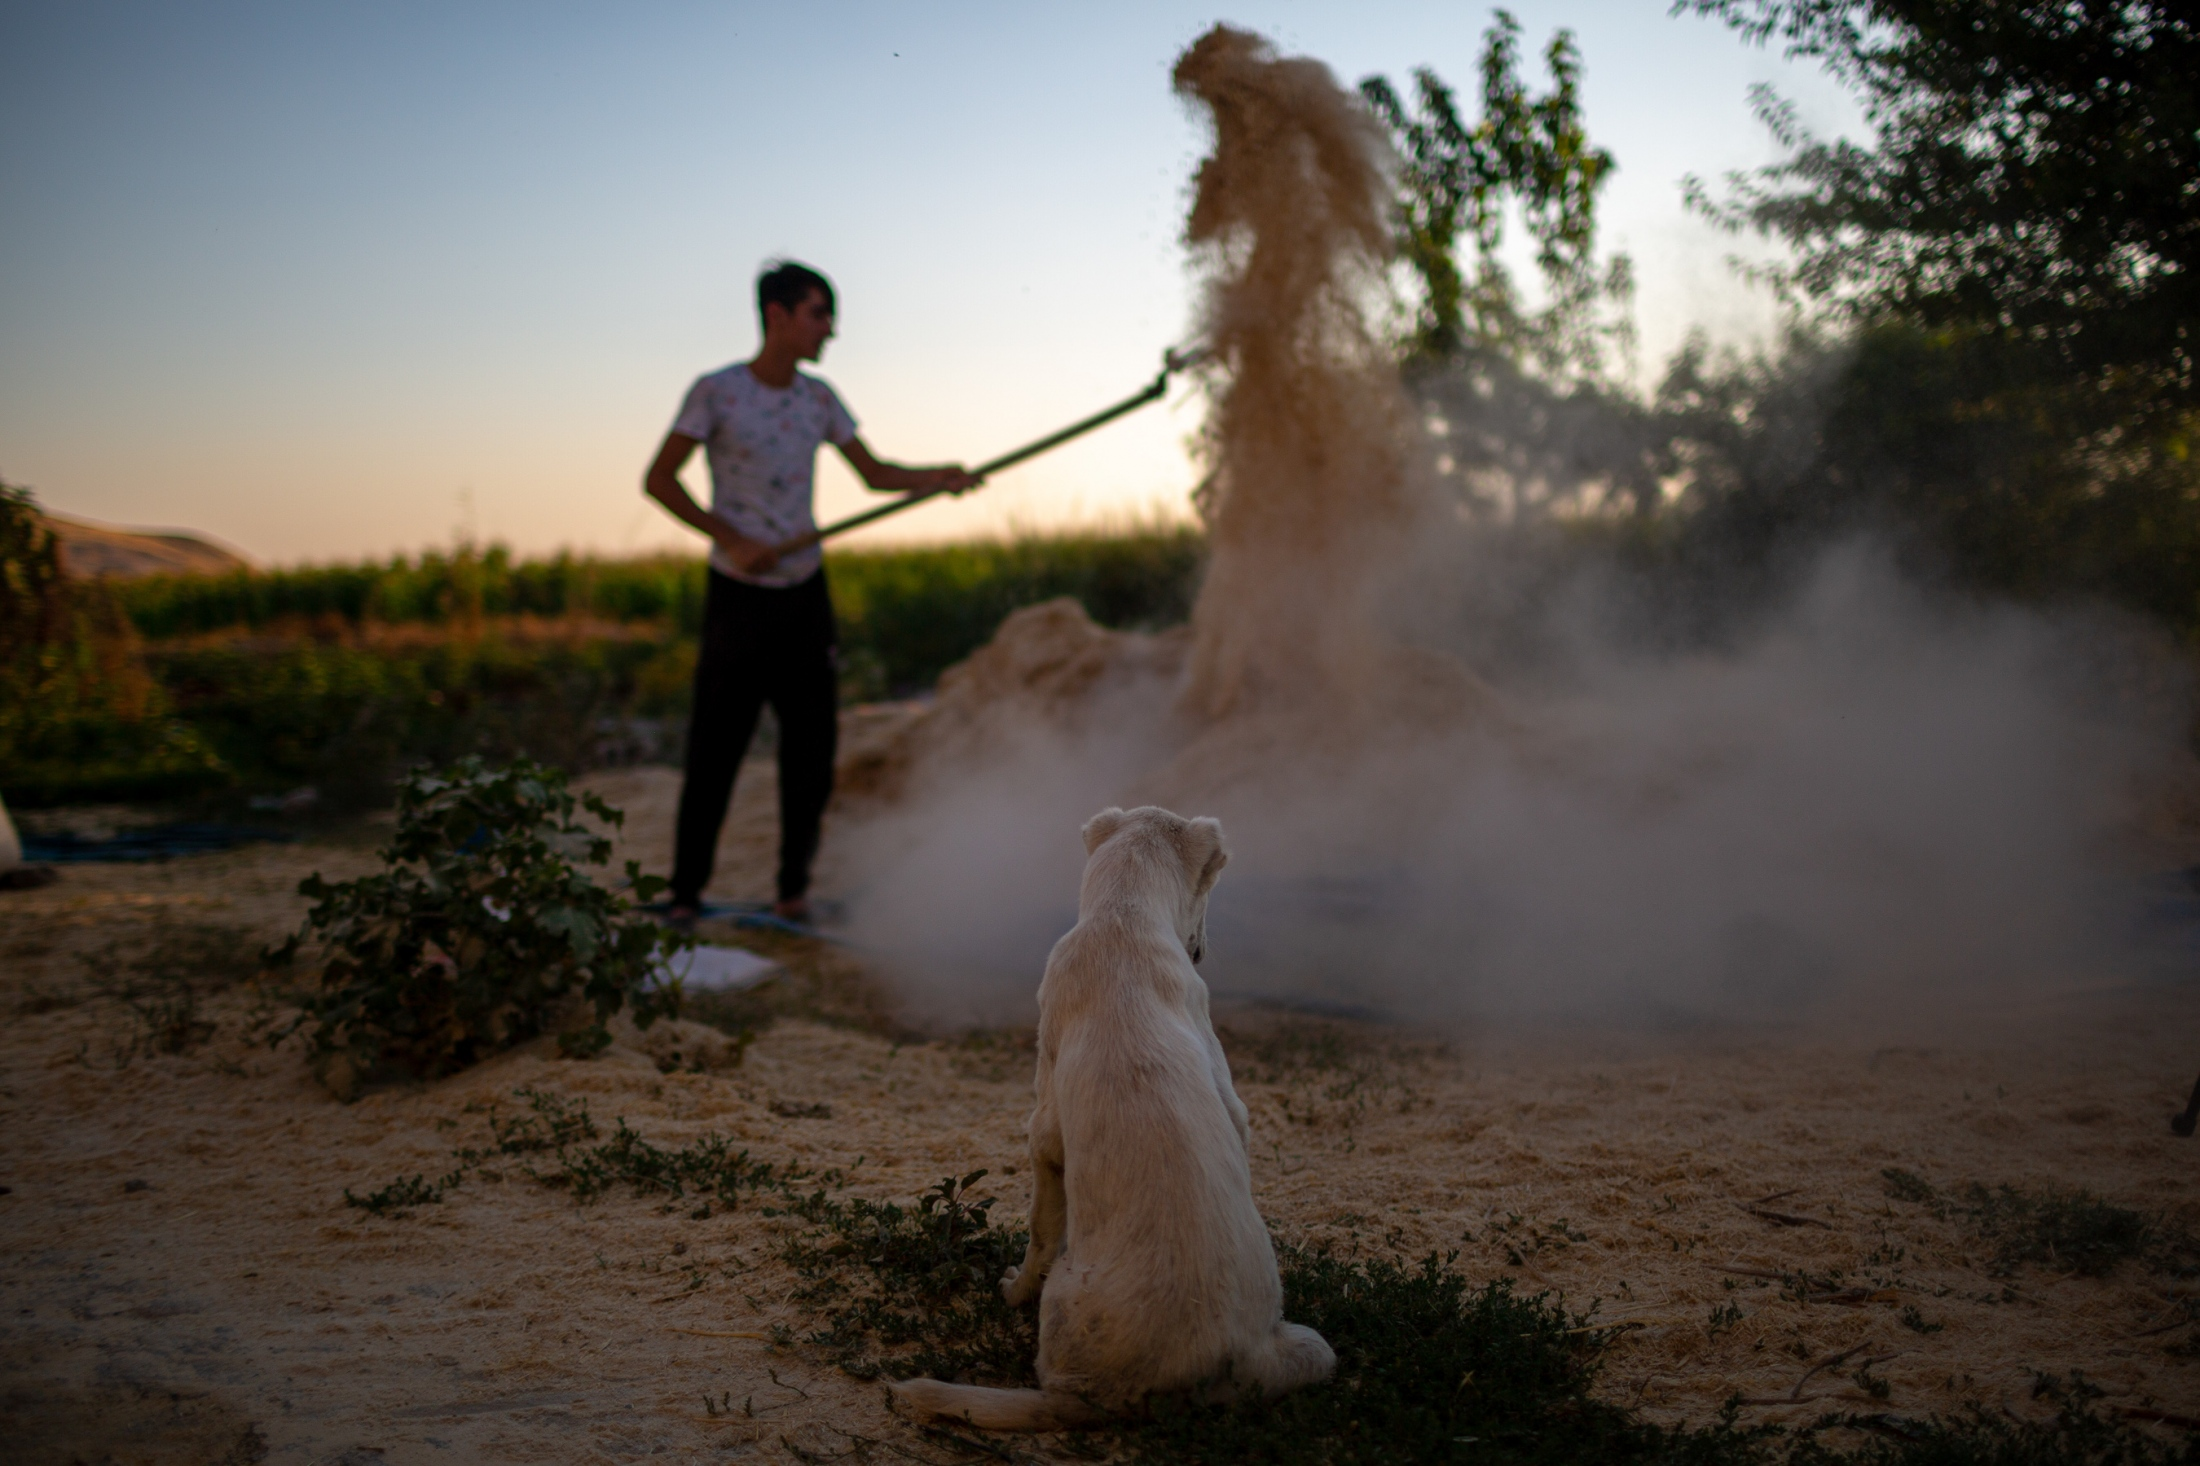 A puppy watches as a Kurdish farmer uses the wind to separate the grain from the chaff in a village near Hasankeyf. Their village along with Hasankeyf is slated be flooded once the waters arrive as the reservoir behind the Ilisu Dam fills. These residents have lived independently for generations: living off of the land, their cattle, their agriculture and various commercial enterprises.